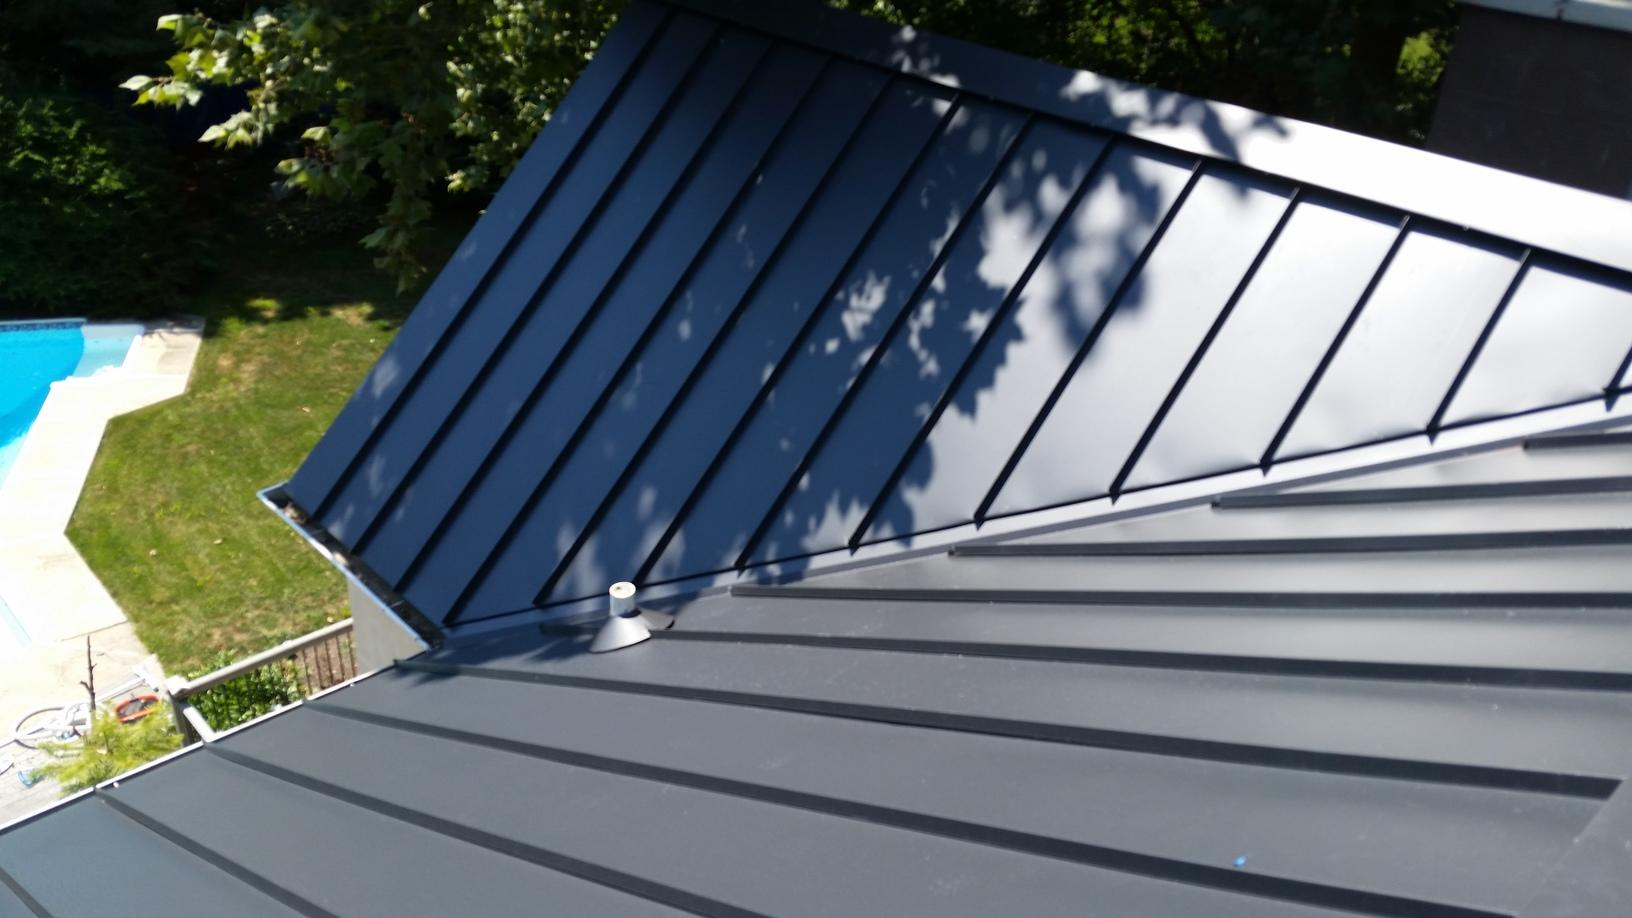 Replacing Asphalt Shingle Roof with Metal in West Chester, PA - After Photo